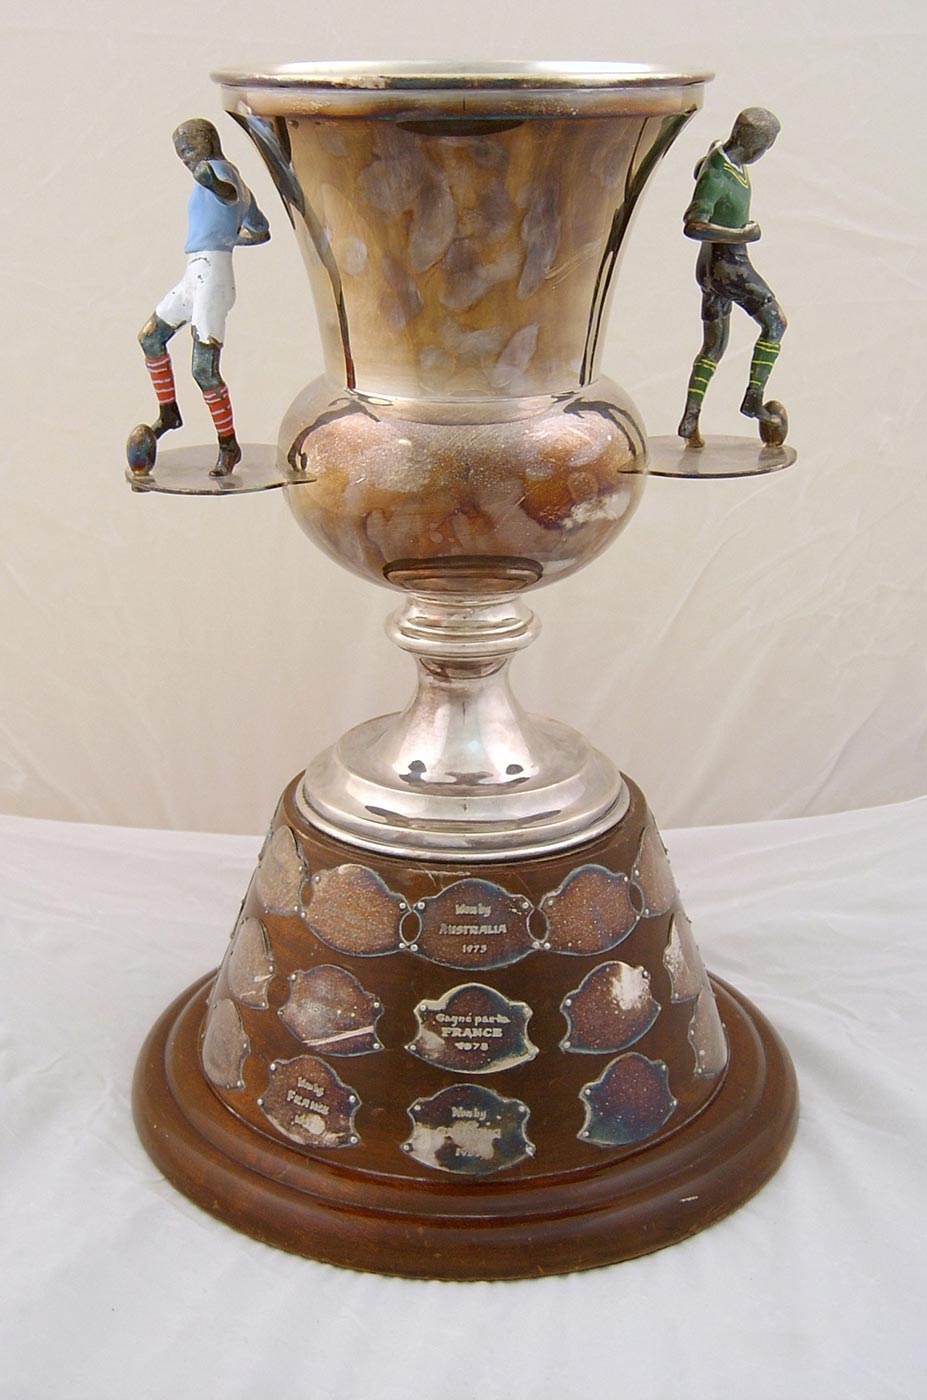 Tarnished International Rugby League trophy before conservation treatment - click to view larger image